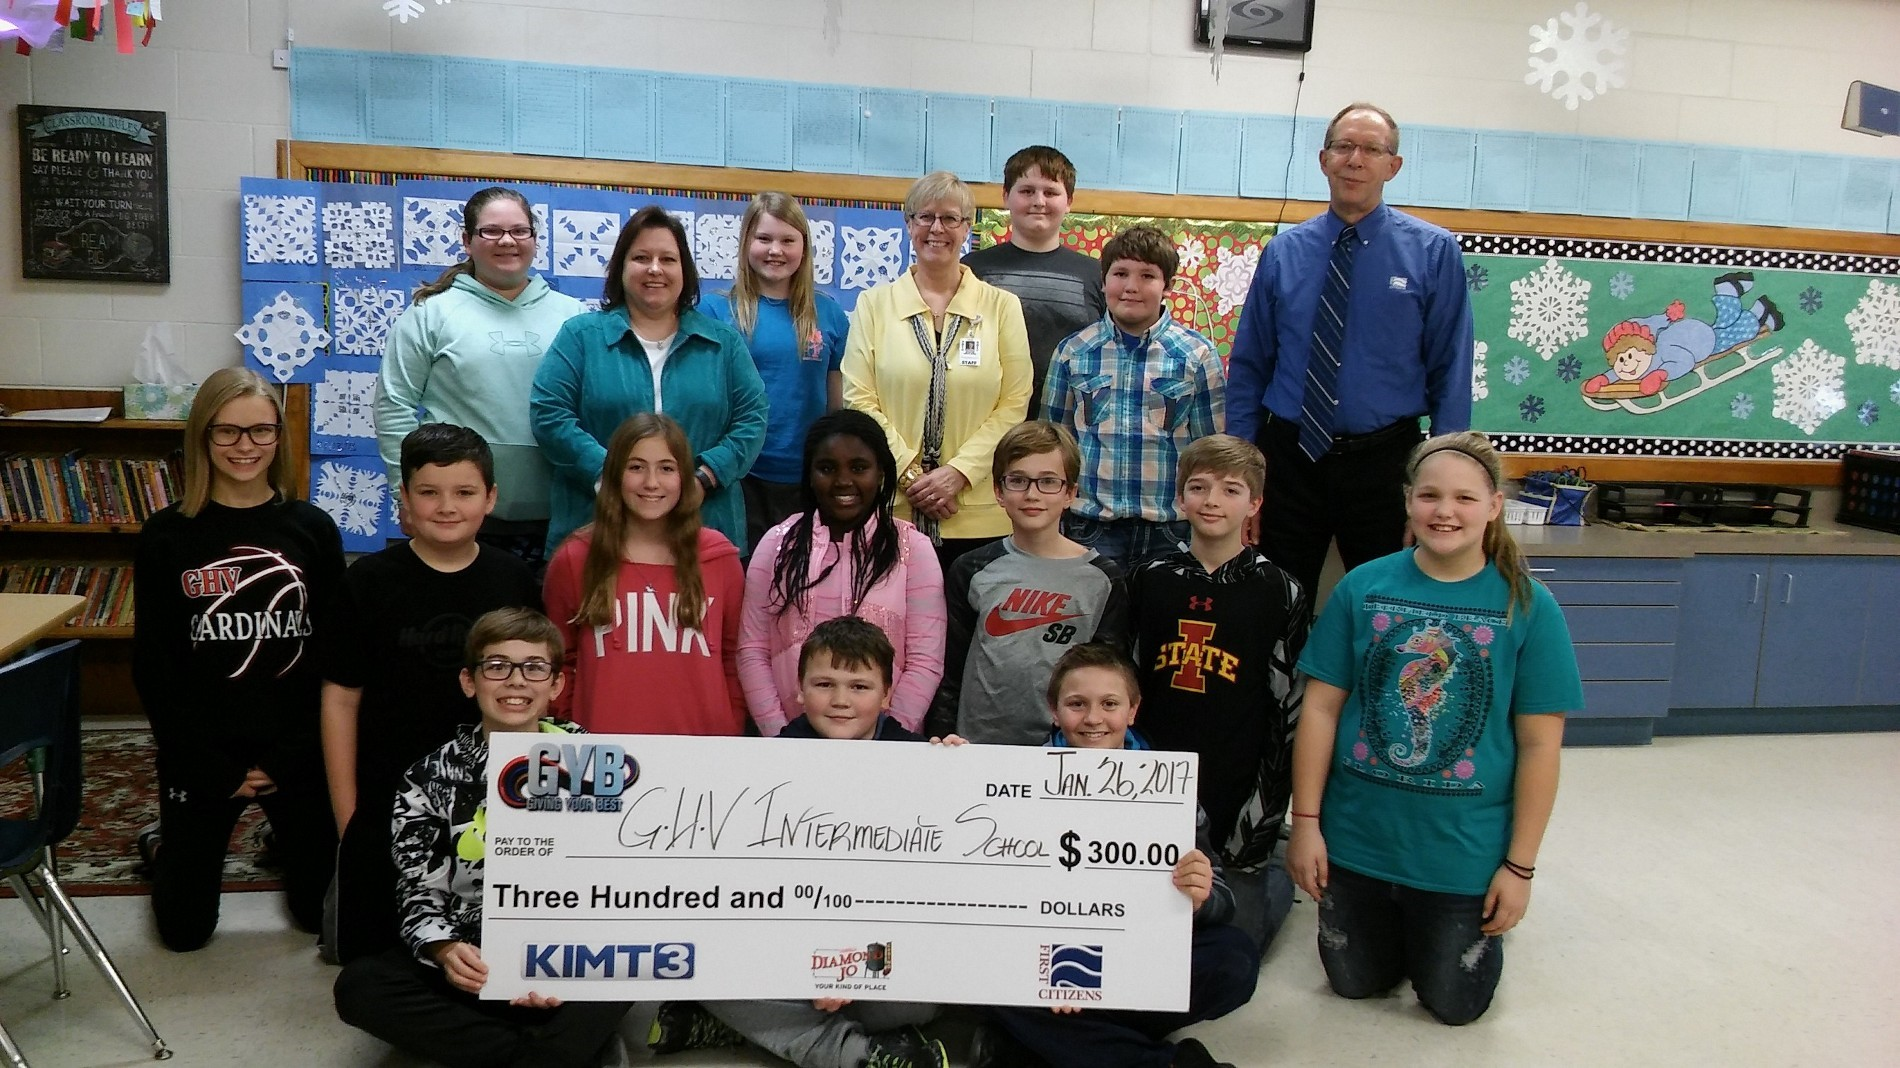 Mrs. Heitland's class was awarded $300 for Tools for Schools!